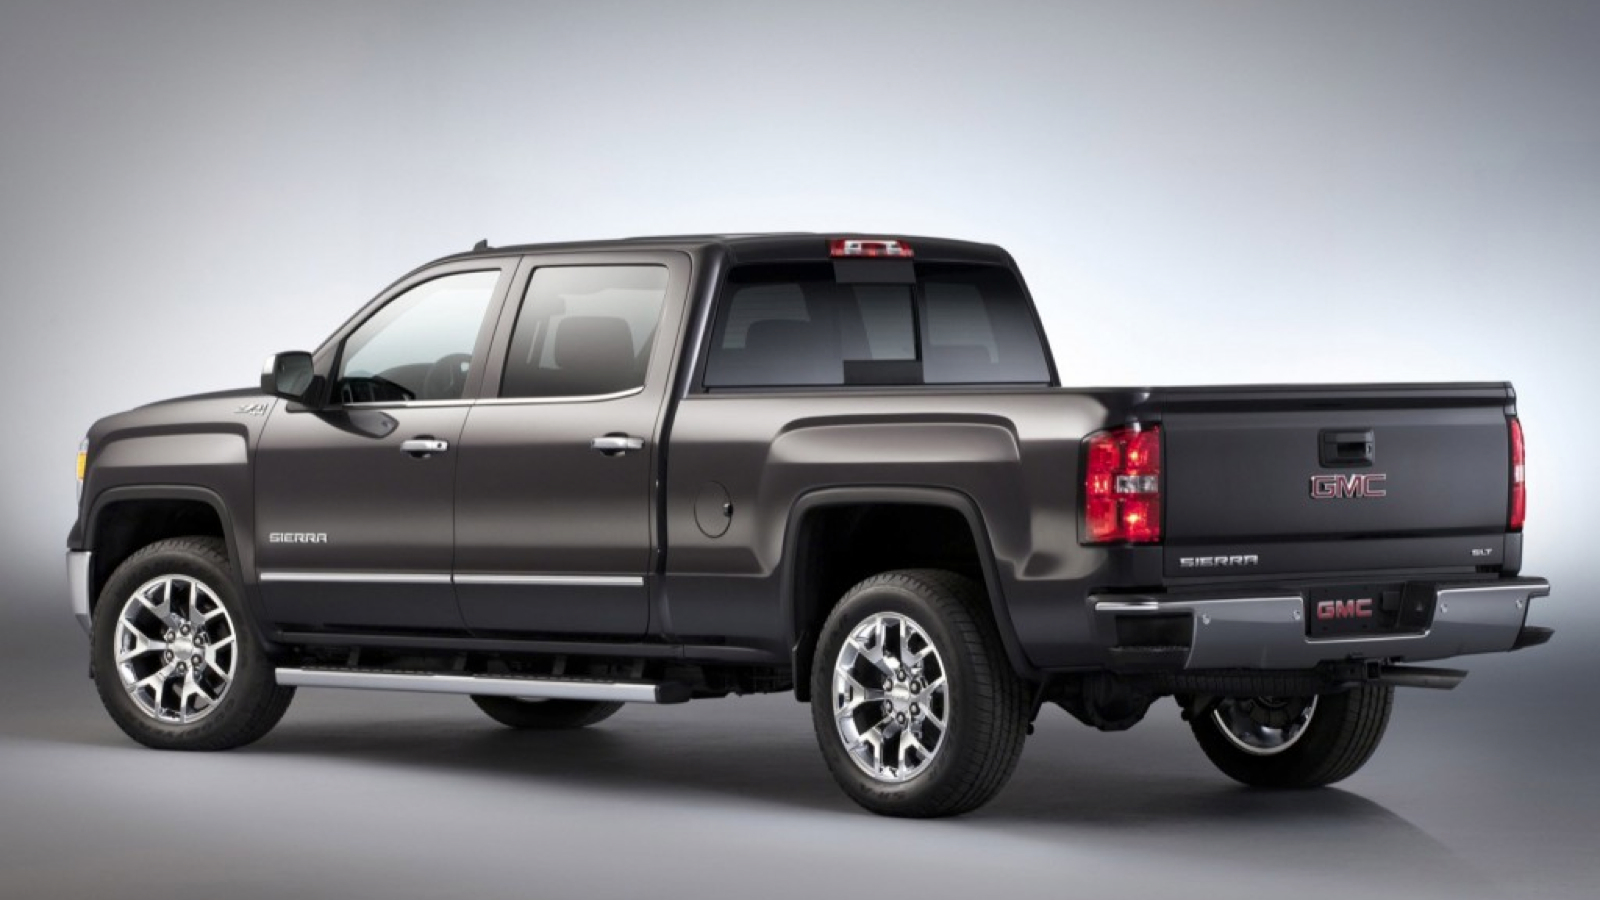 colors of 2015 chevy pickup autos post. Black Bedroom Furniture Sets. Home Design Ideas